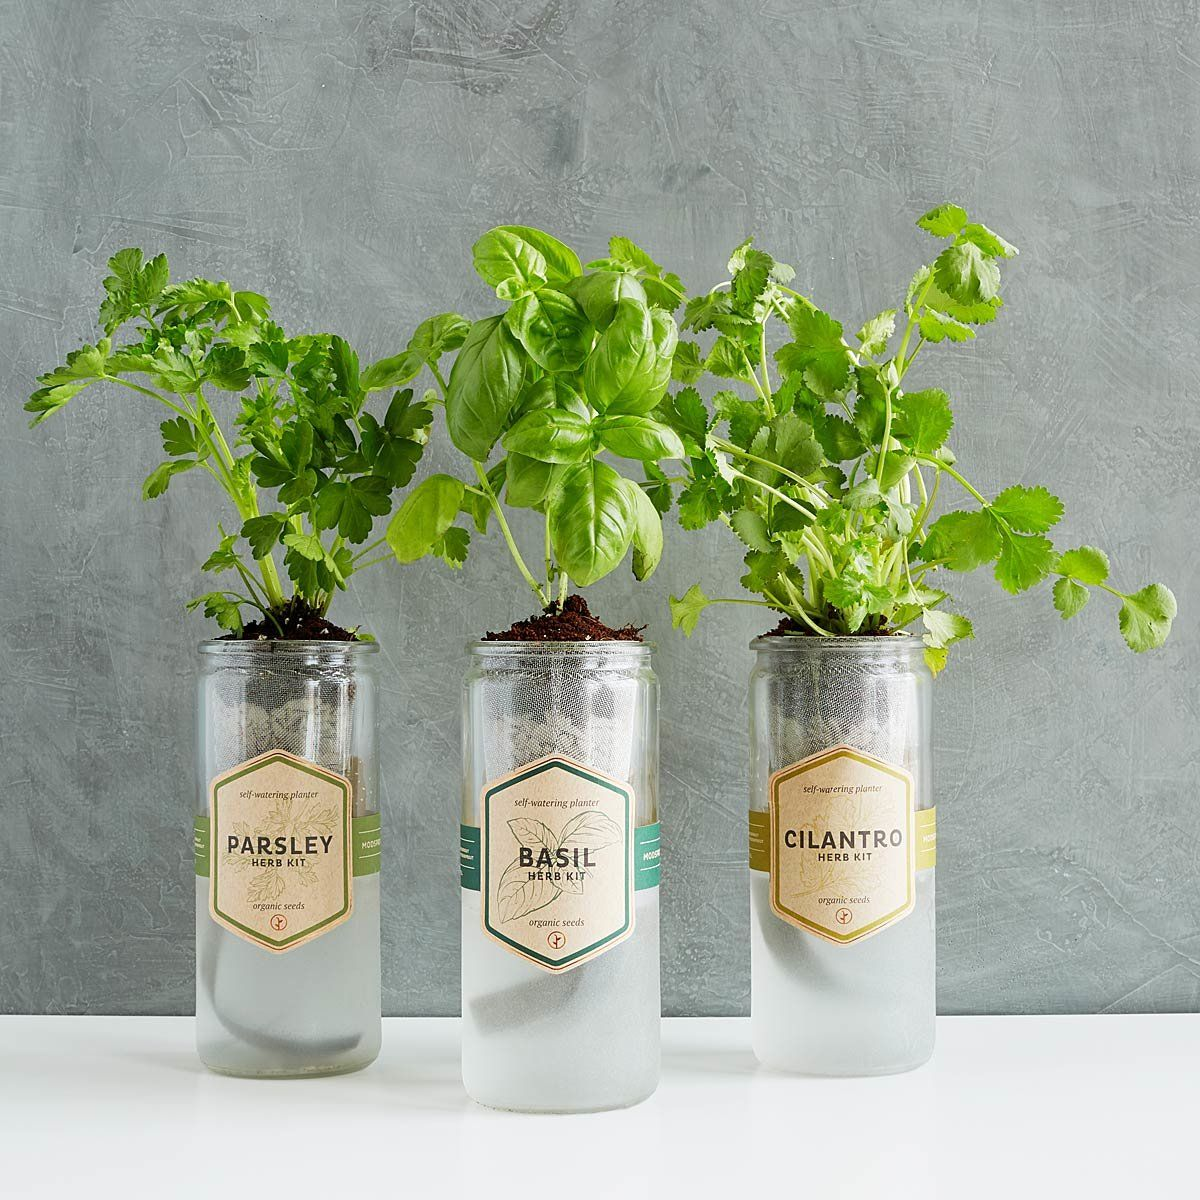 These Garden Starter Kits Make It Easy To Grow Herbs Vegetables